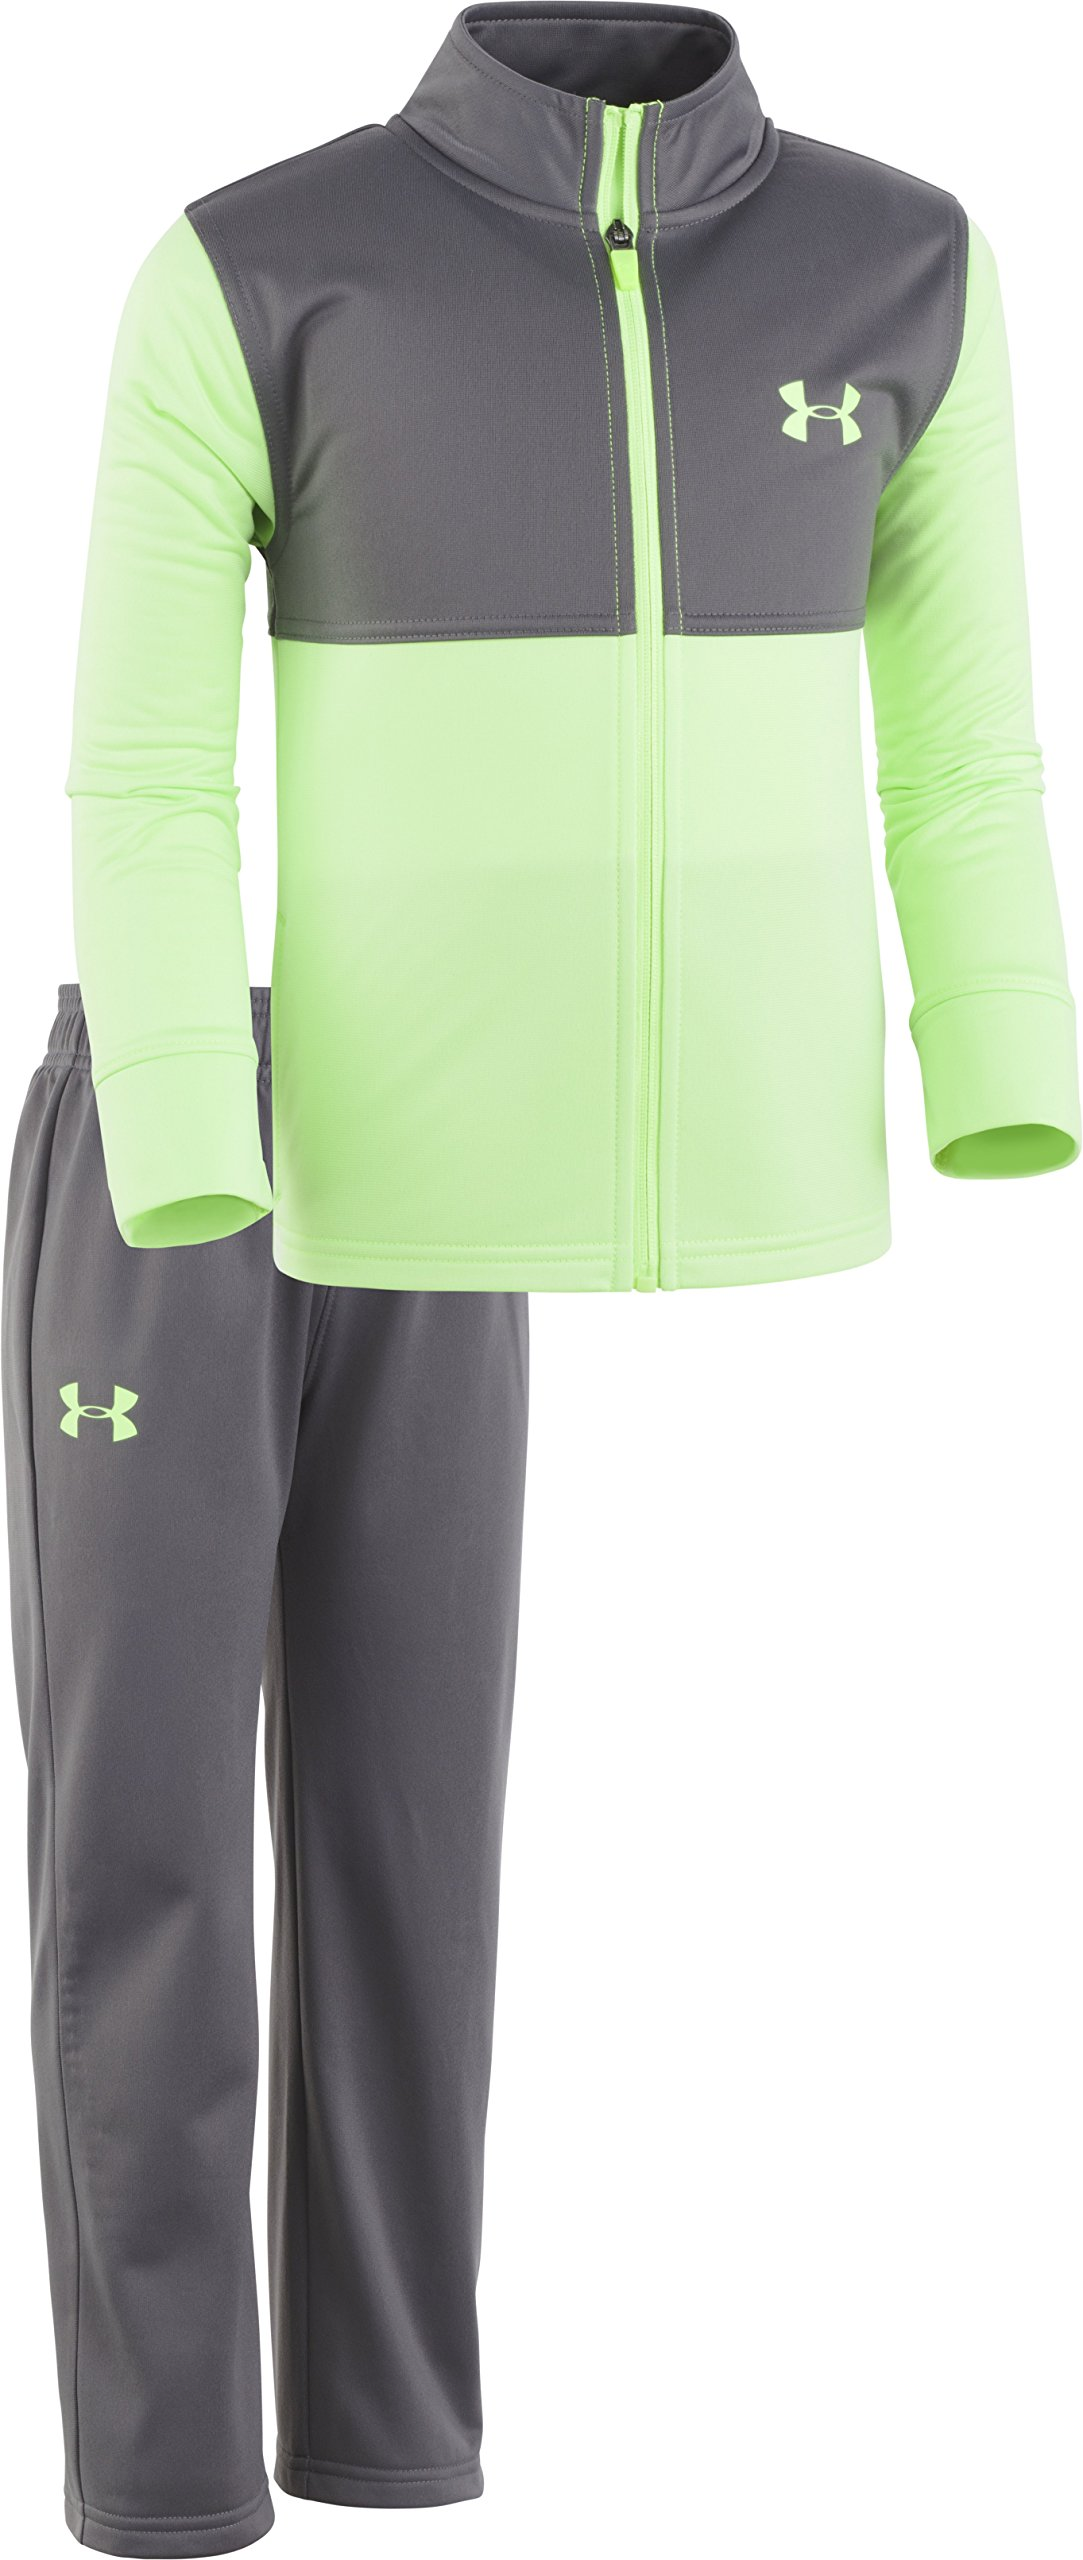 Under Armour Boys' Little Legend Track Set, Quirky Lime 4